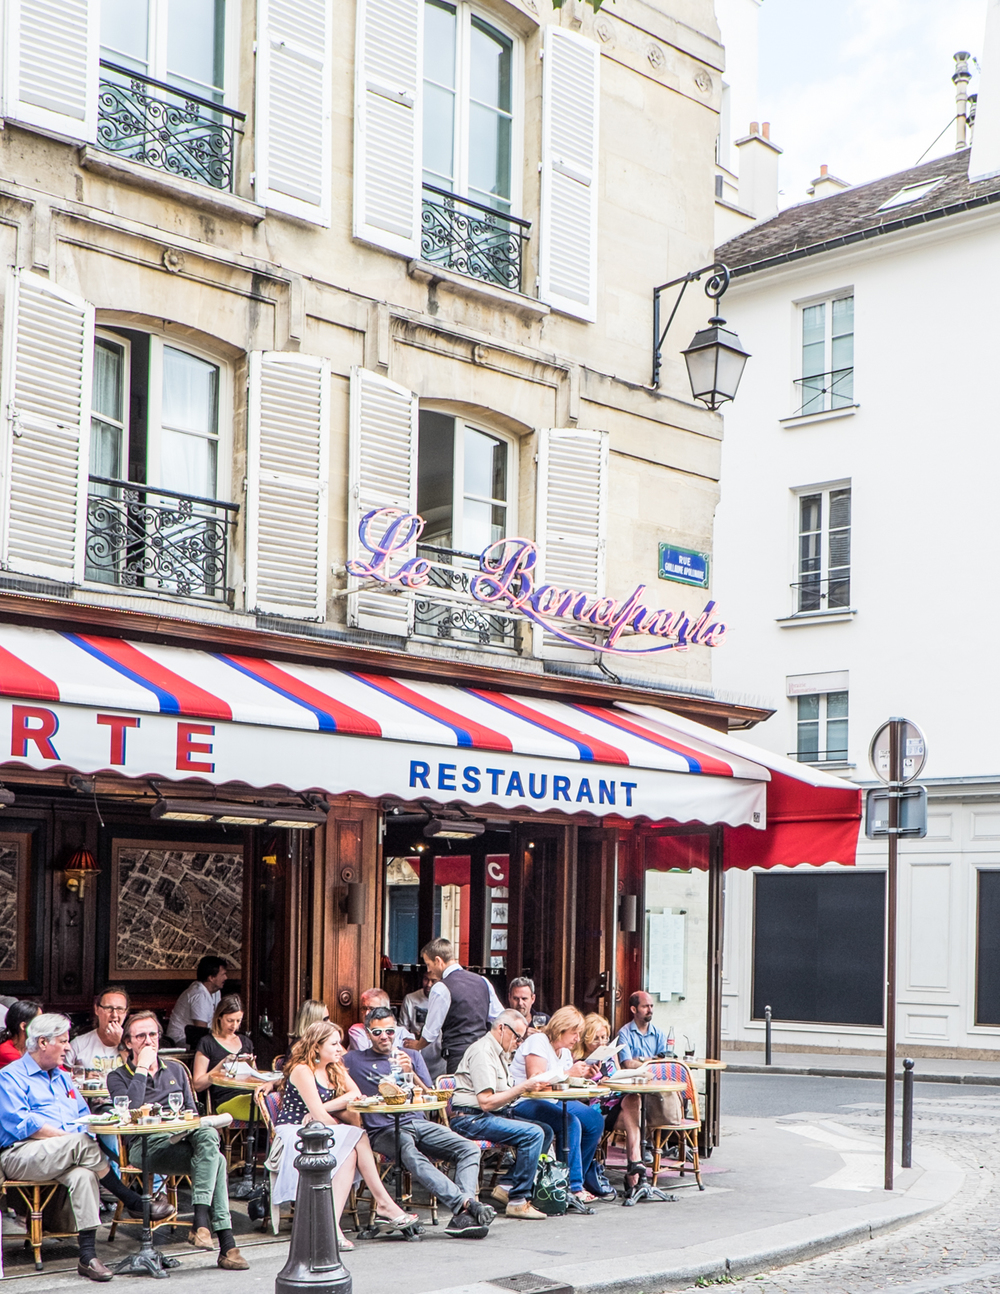 LA BONAPARTE  42 Rue Bonaparte, 75006   INSIDER TIP  | No competition: Paris does al fresco dining better than any other city! Kick up your feet for drinks at this Saint-Germain spot, known for its tri-color awning and prime people-watching opportunities.